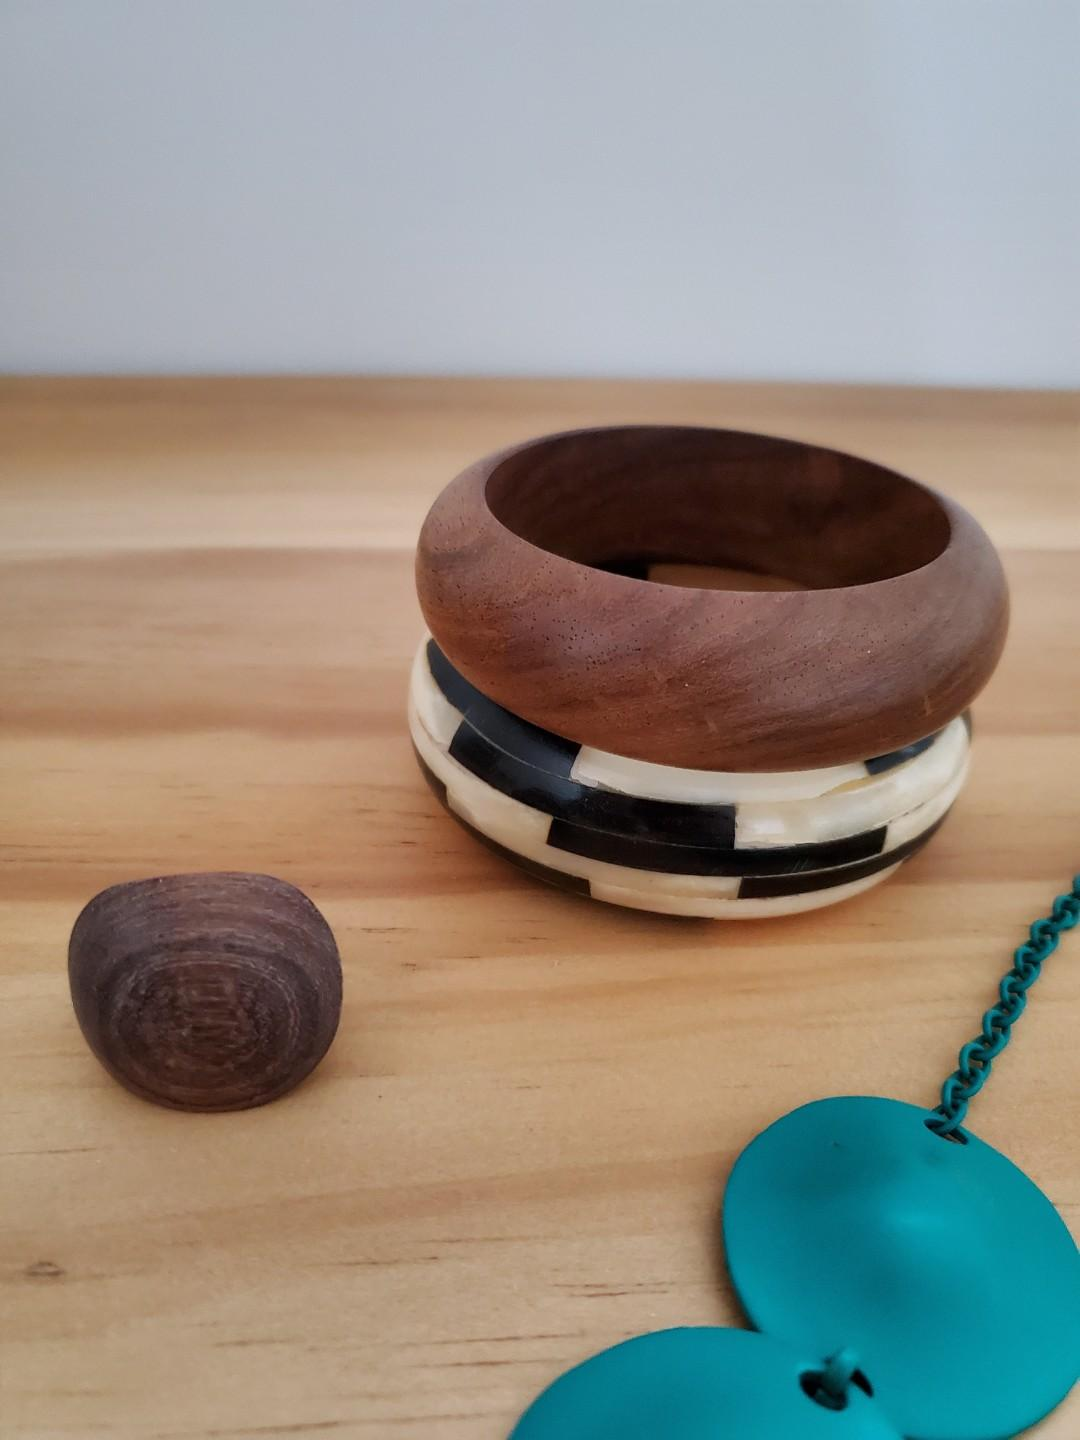 Assorted wooden and metal jewelry